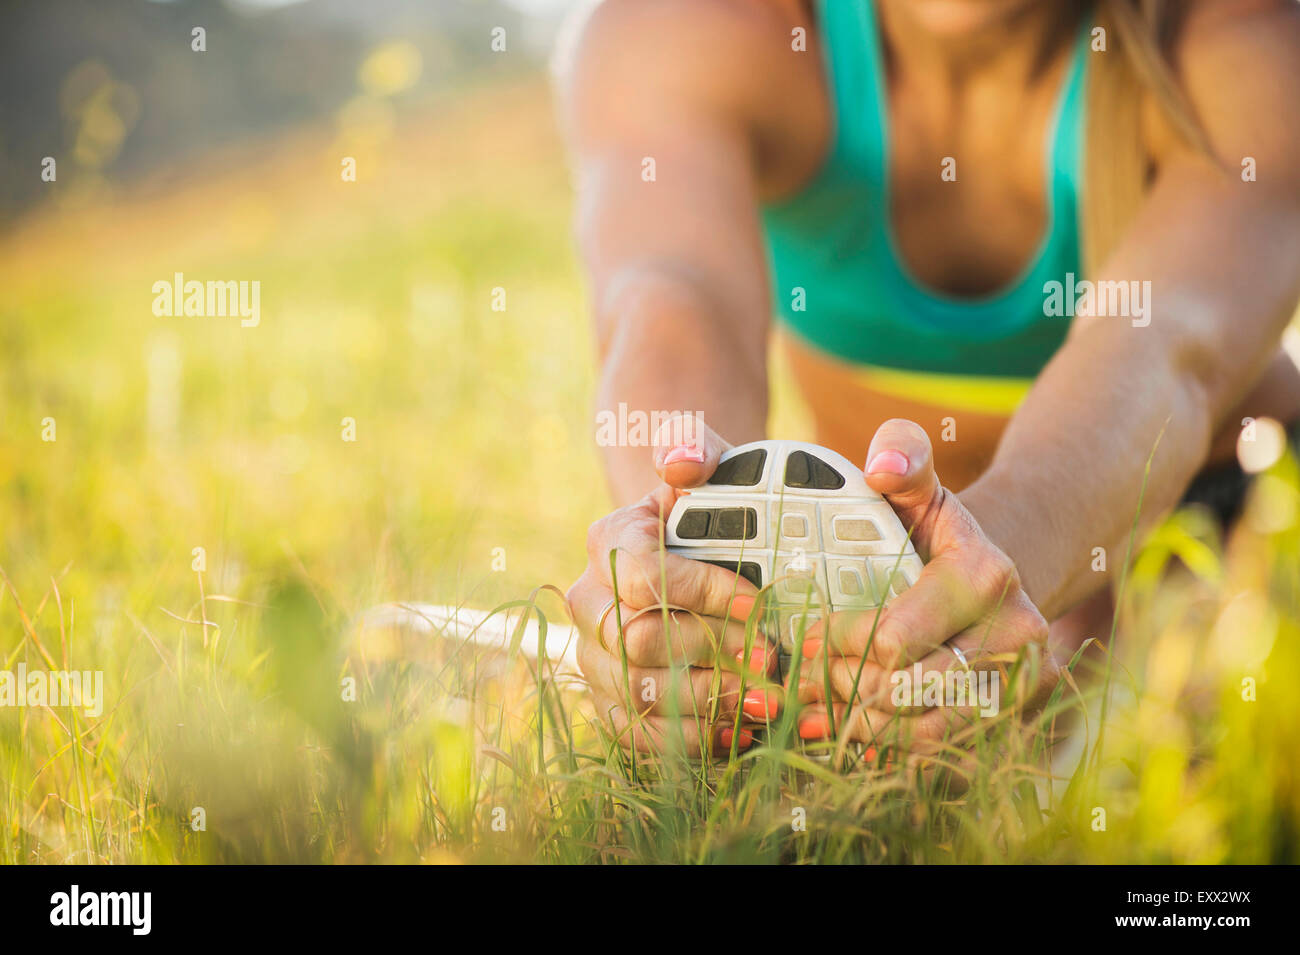 Woman in field Photo Stock